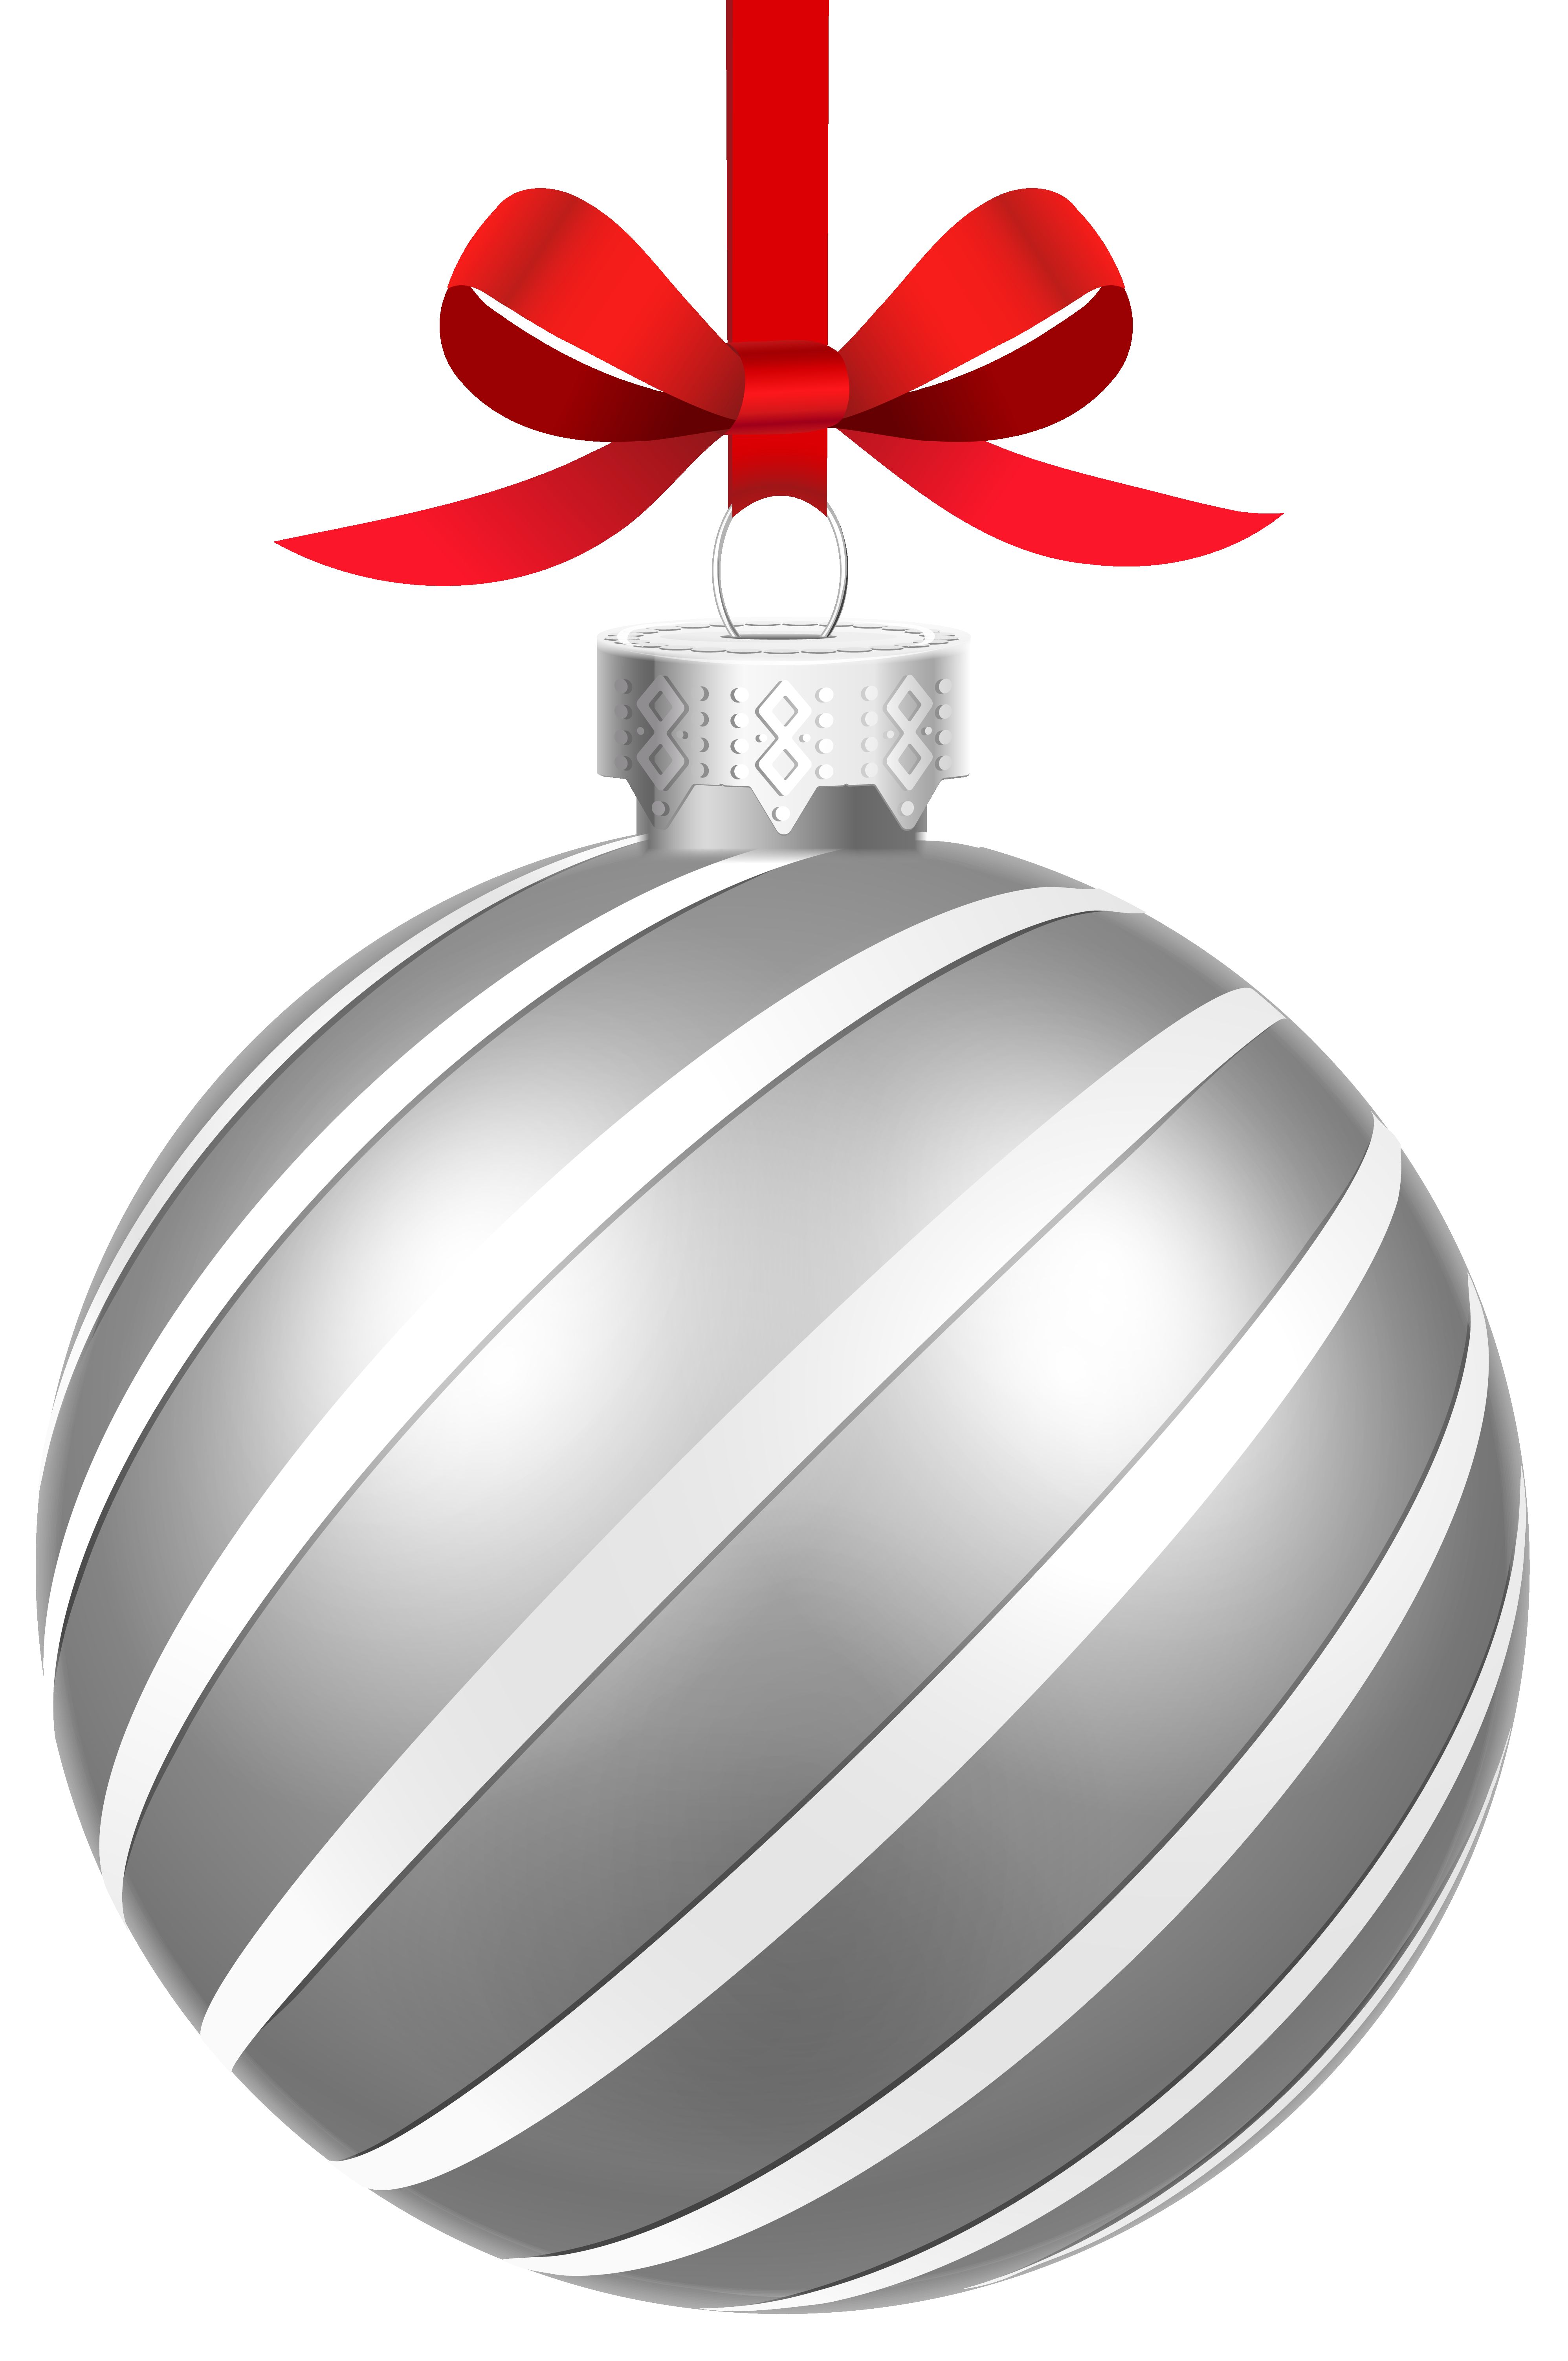 Silver christmas ornament png. Striped ball clipart image